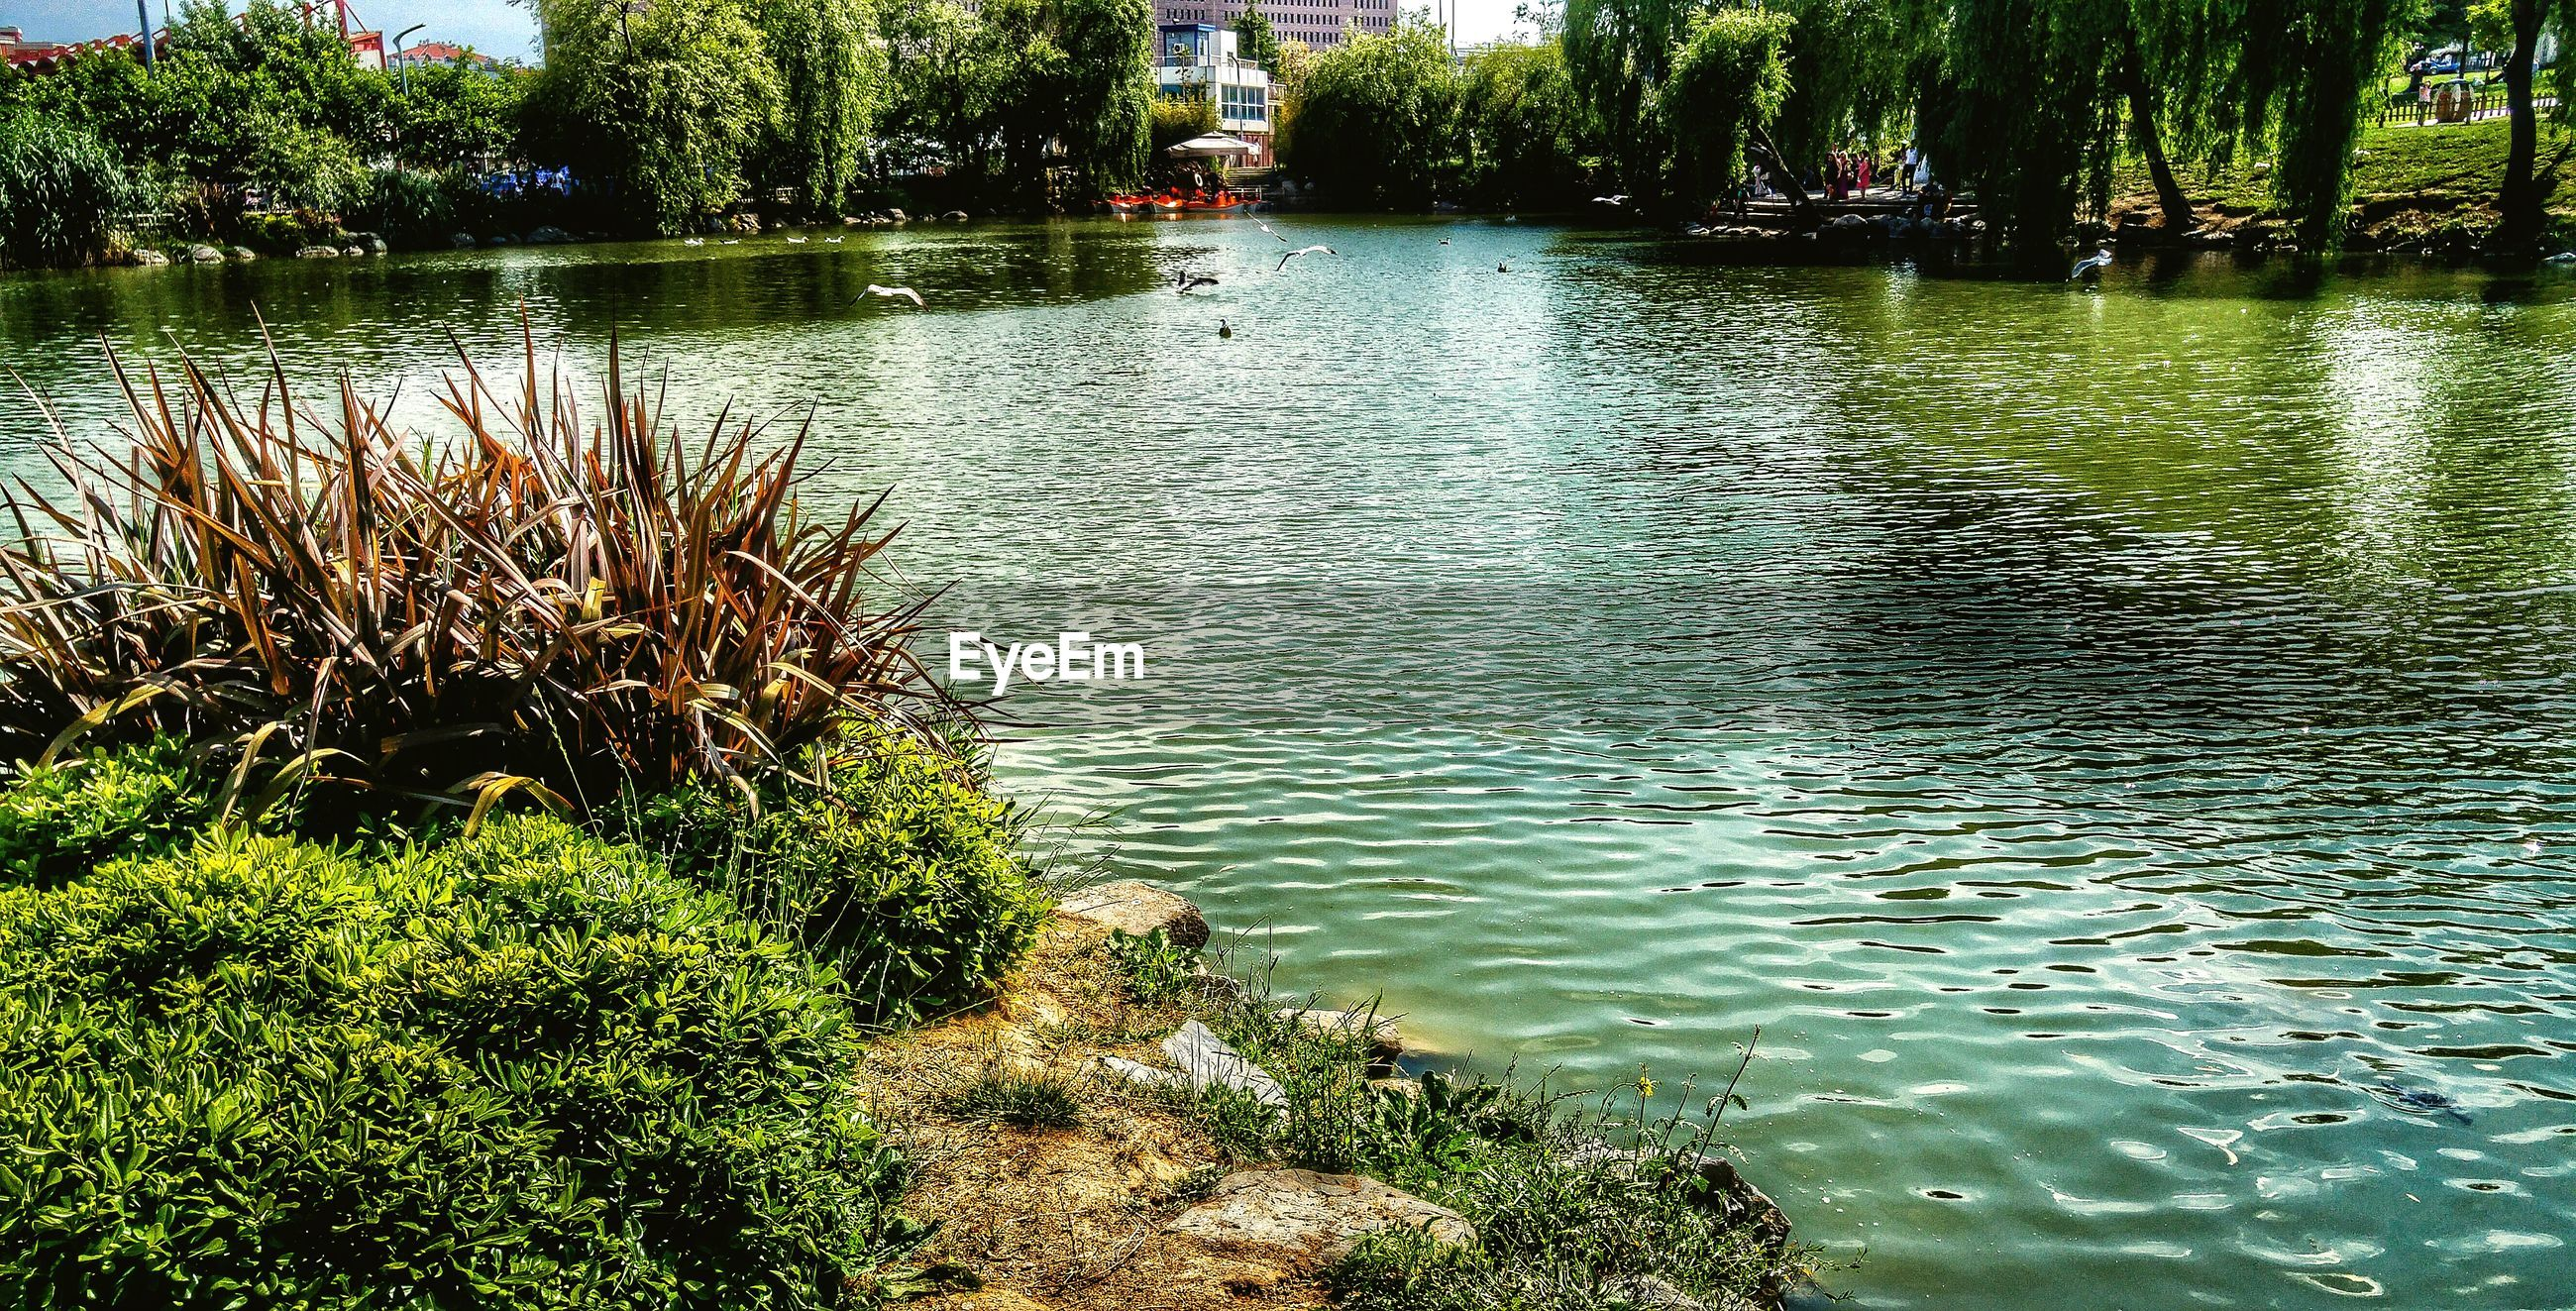 water, tranquil scene, tranquility, lake, scenics, reflection, rippled, nature, beauty in nature, plant, growth, idyllic, non-urban scene, majestic, calm, tourism, waterfront, day, outdoors, vacations, water surface, green color, no people, remote